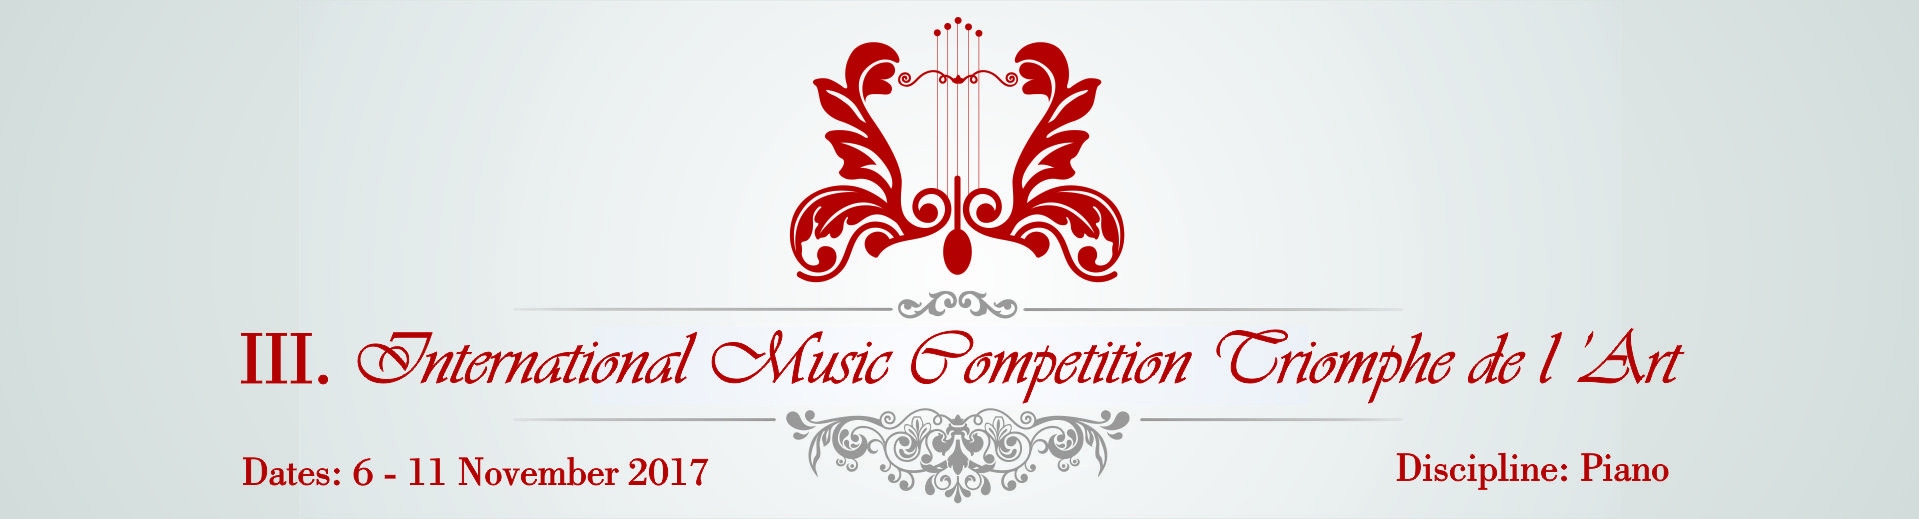 III. International Music Competition Triomphe de l'Art